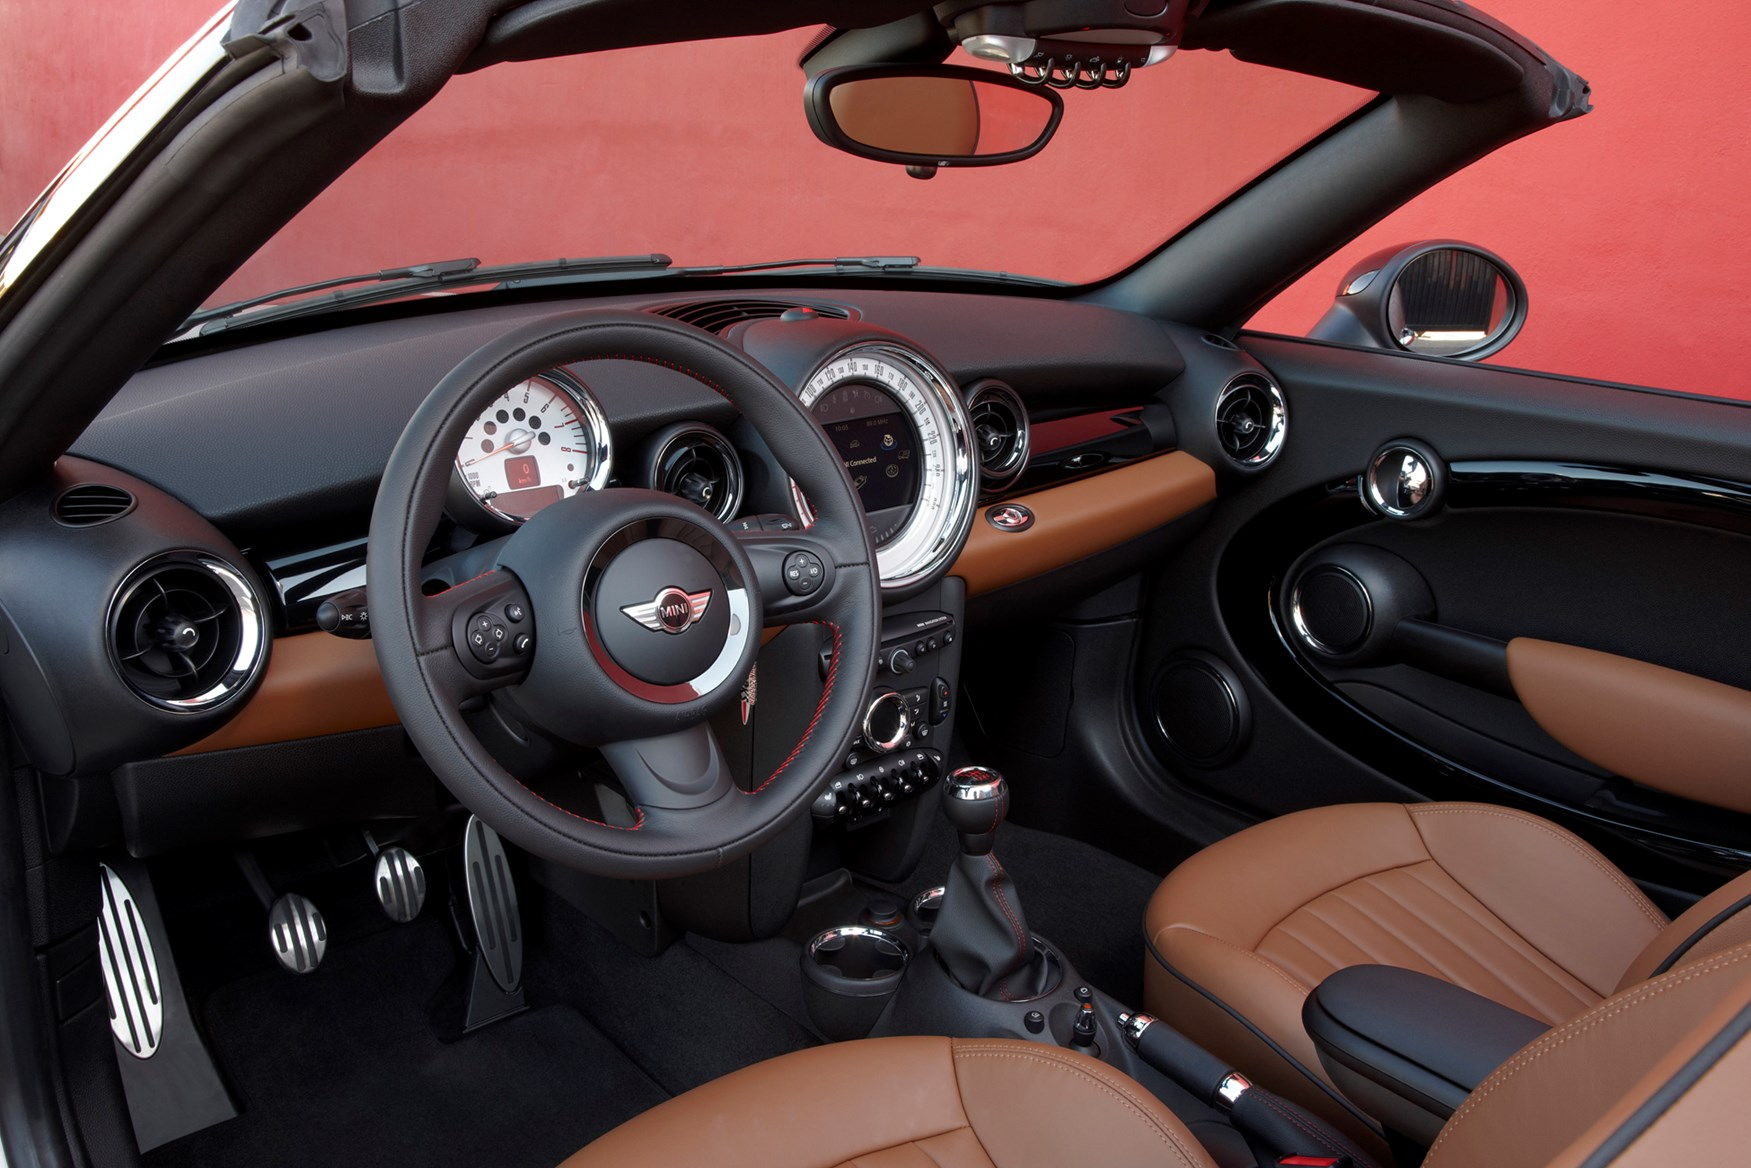 Used Mini Roadster Convertible 2012 2015 Review Parkers